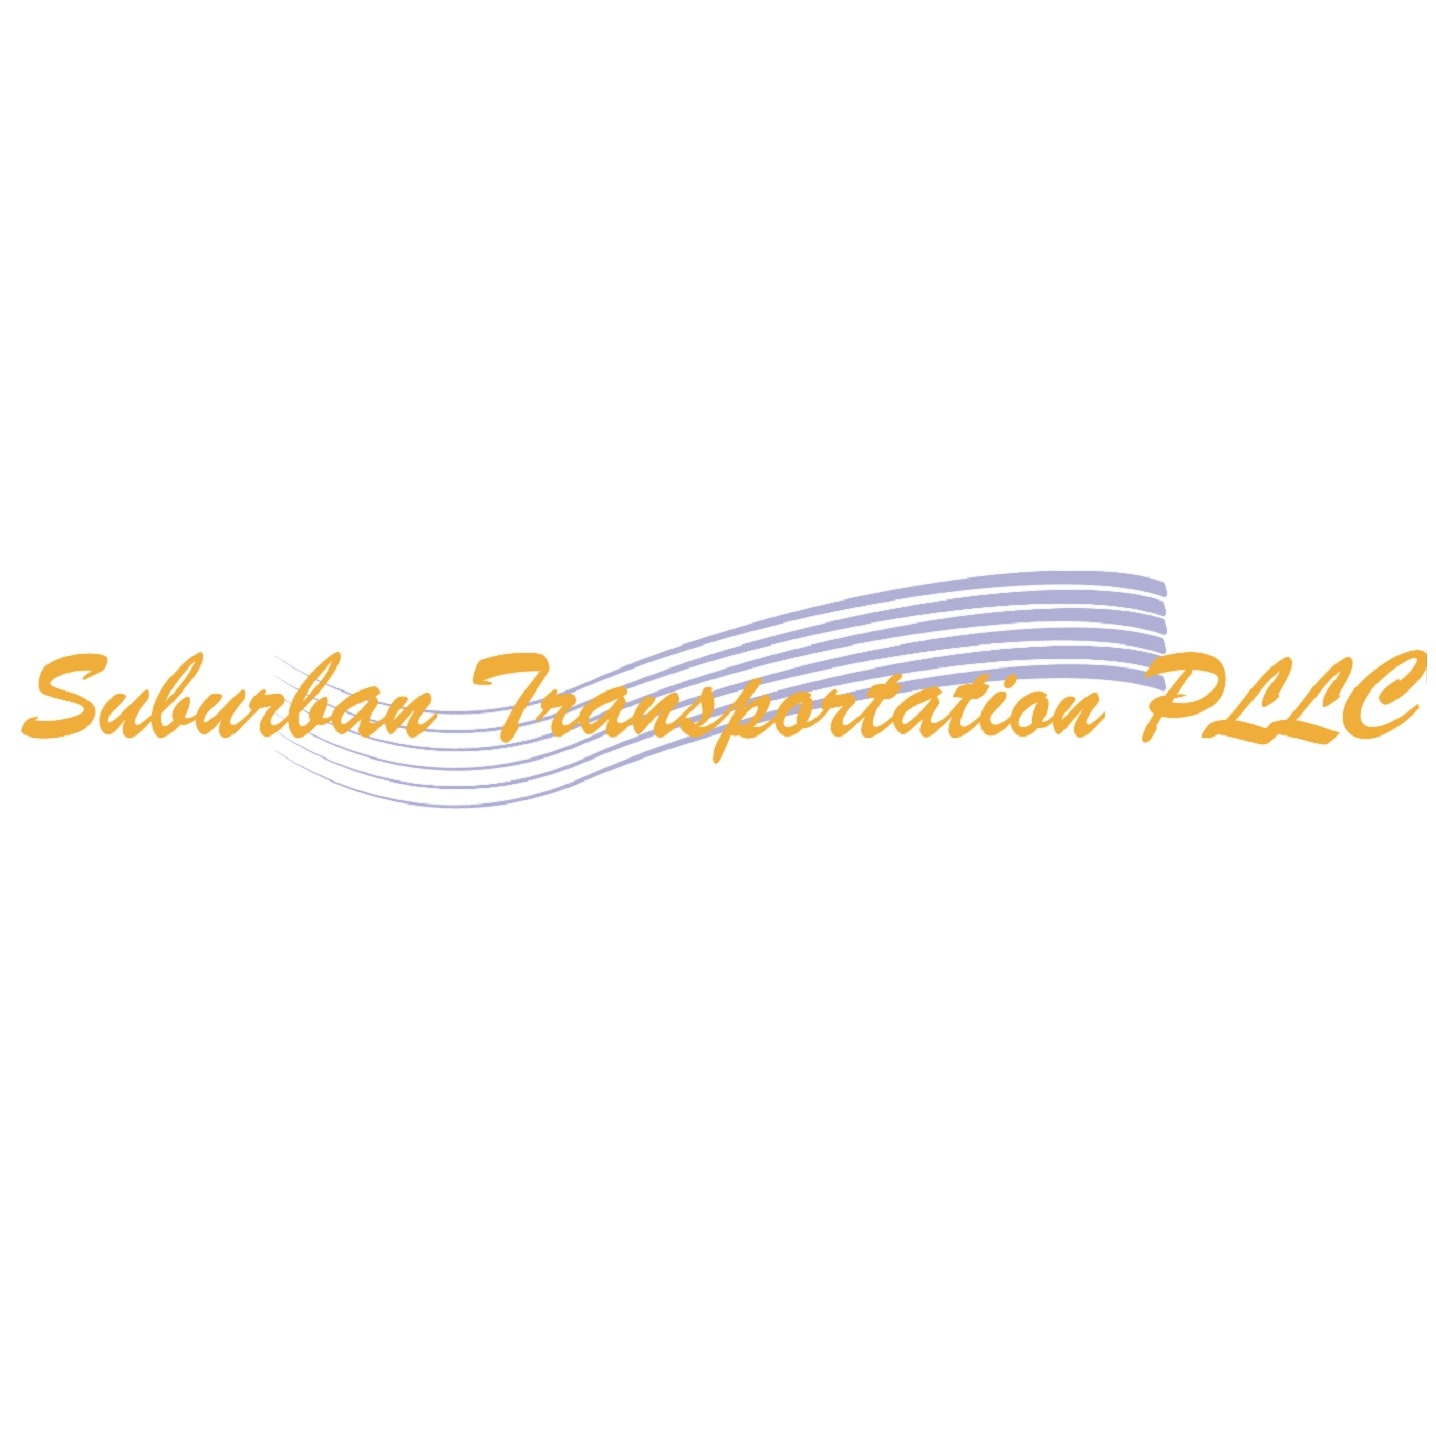 Suburban Transportation PLLC logo